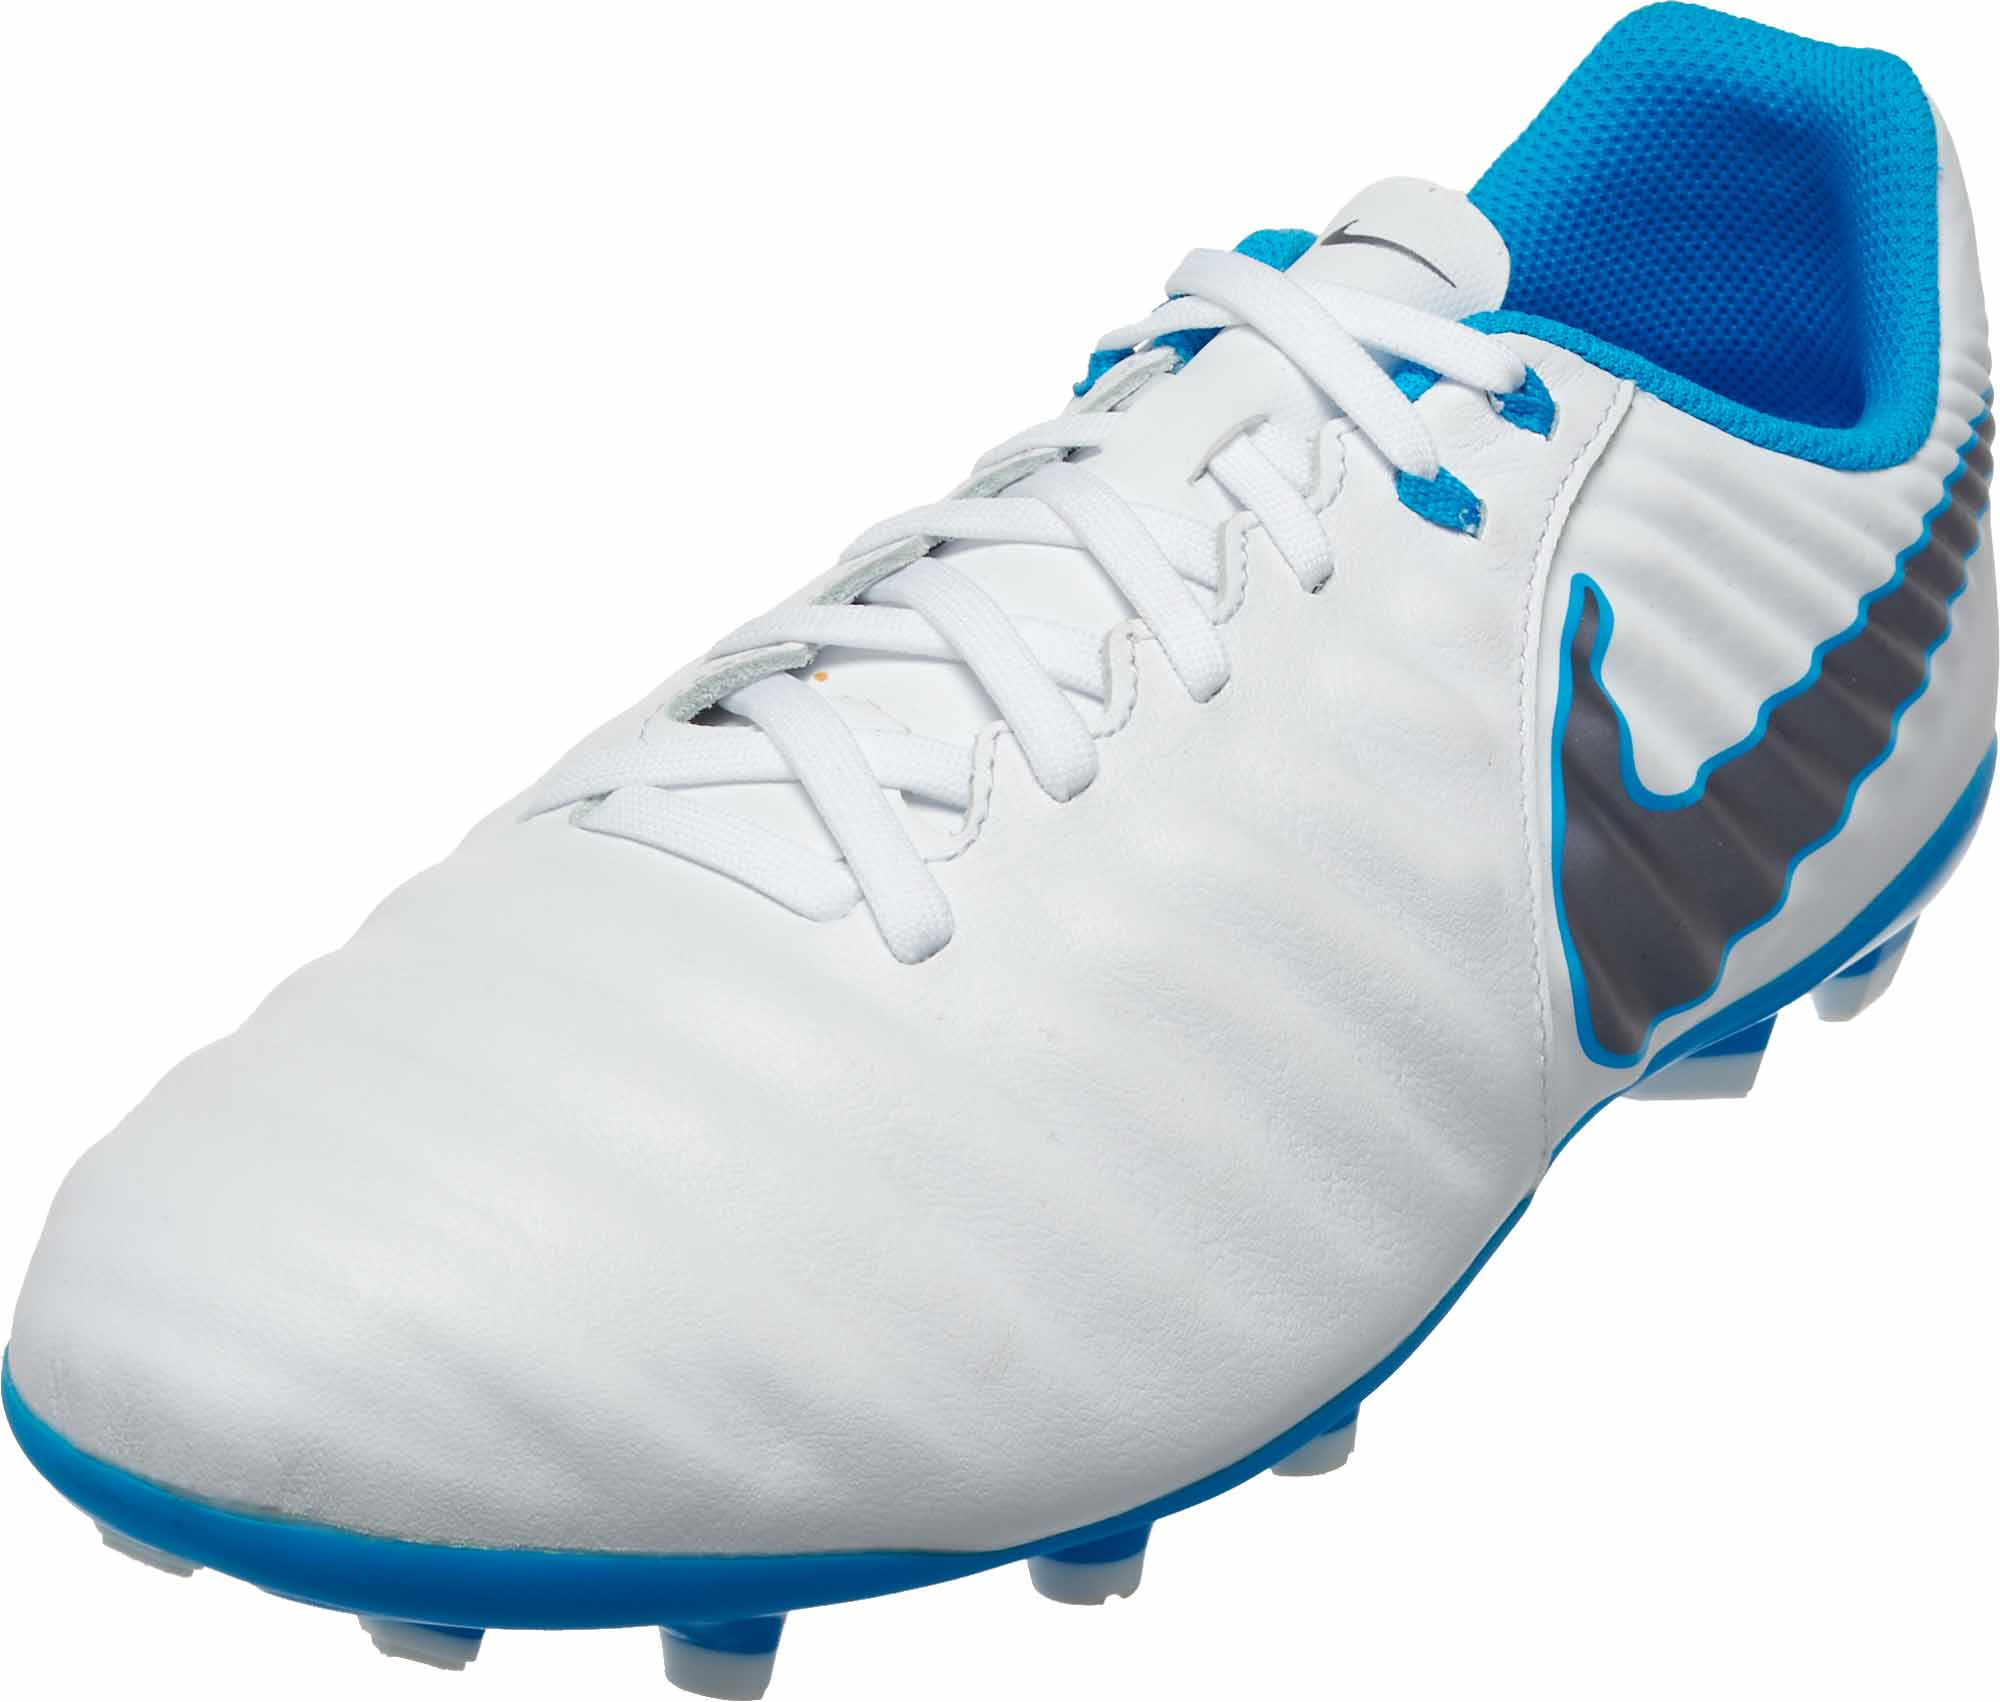 sale retailer a8559 7b69f Nike Tiempo Legend VII Academy FG - Youth - White/Metallic Cool Grey/Blue  Hero